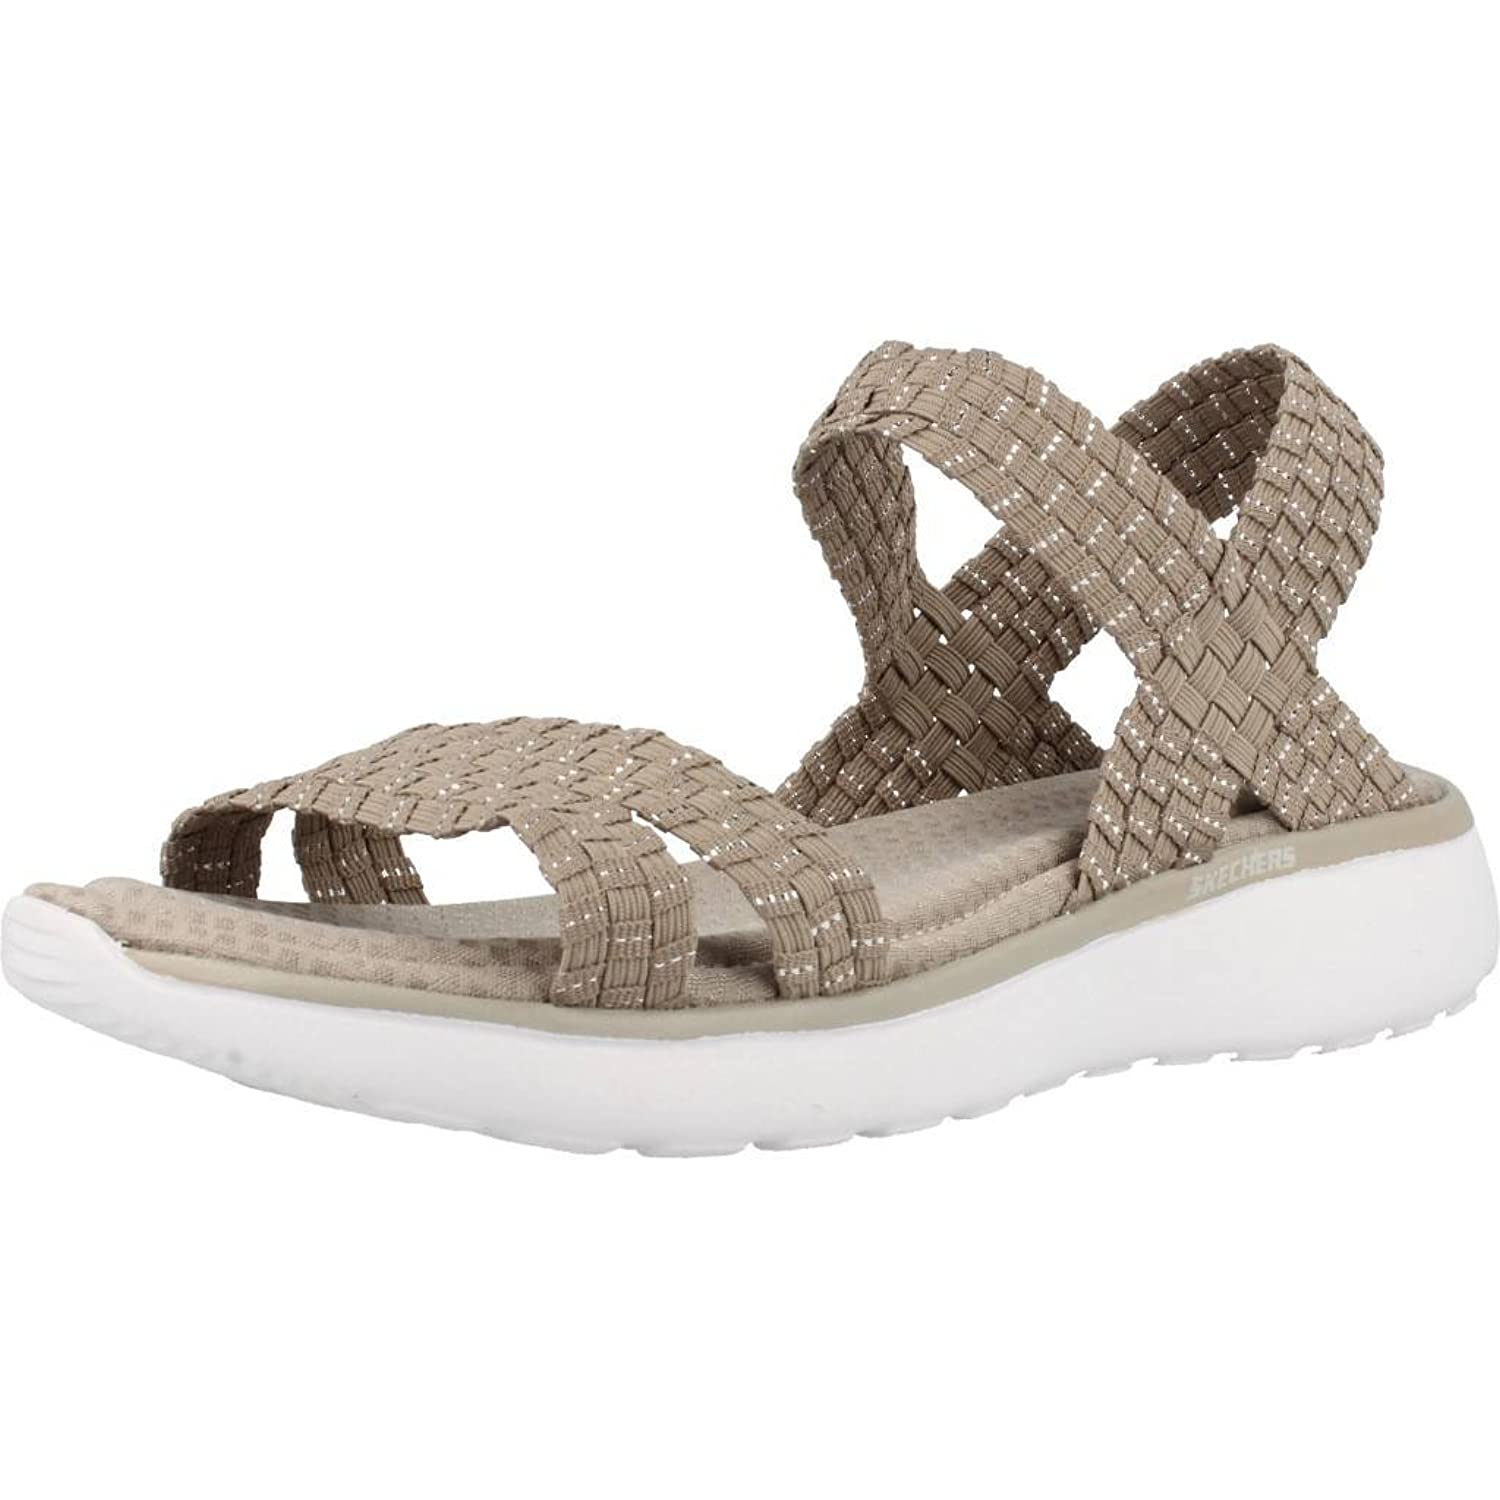 0ae37ad4d642 Skechers Womens Counterpart Breeze-Warped 38596 Sandals Taupe Silver UK3  Taupe Silver  Amazon.co.uk  Shoes   Bags